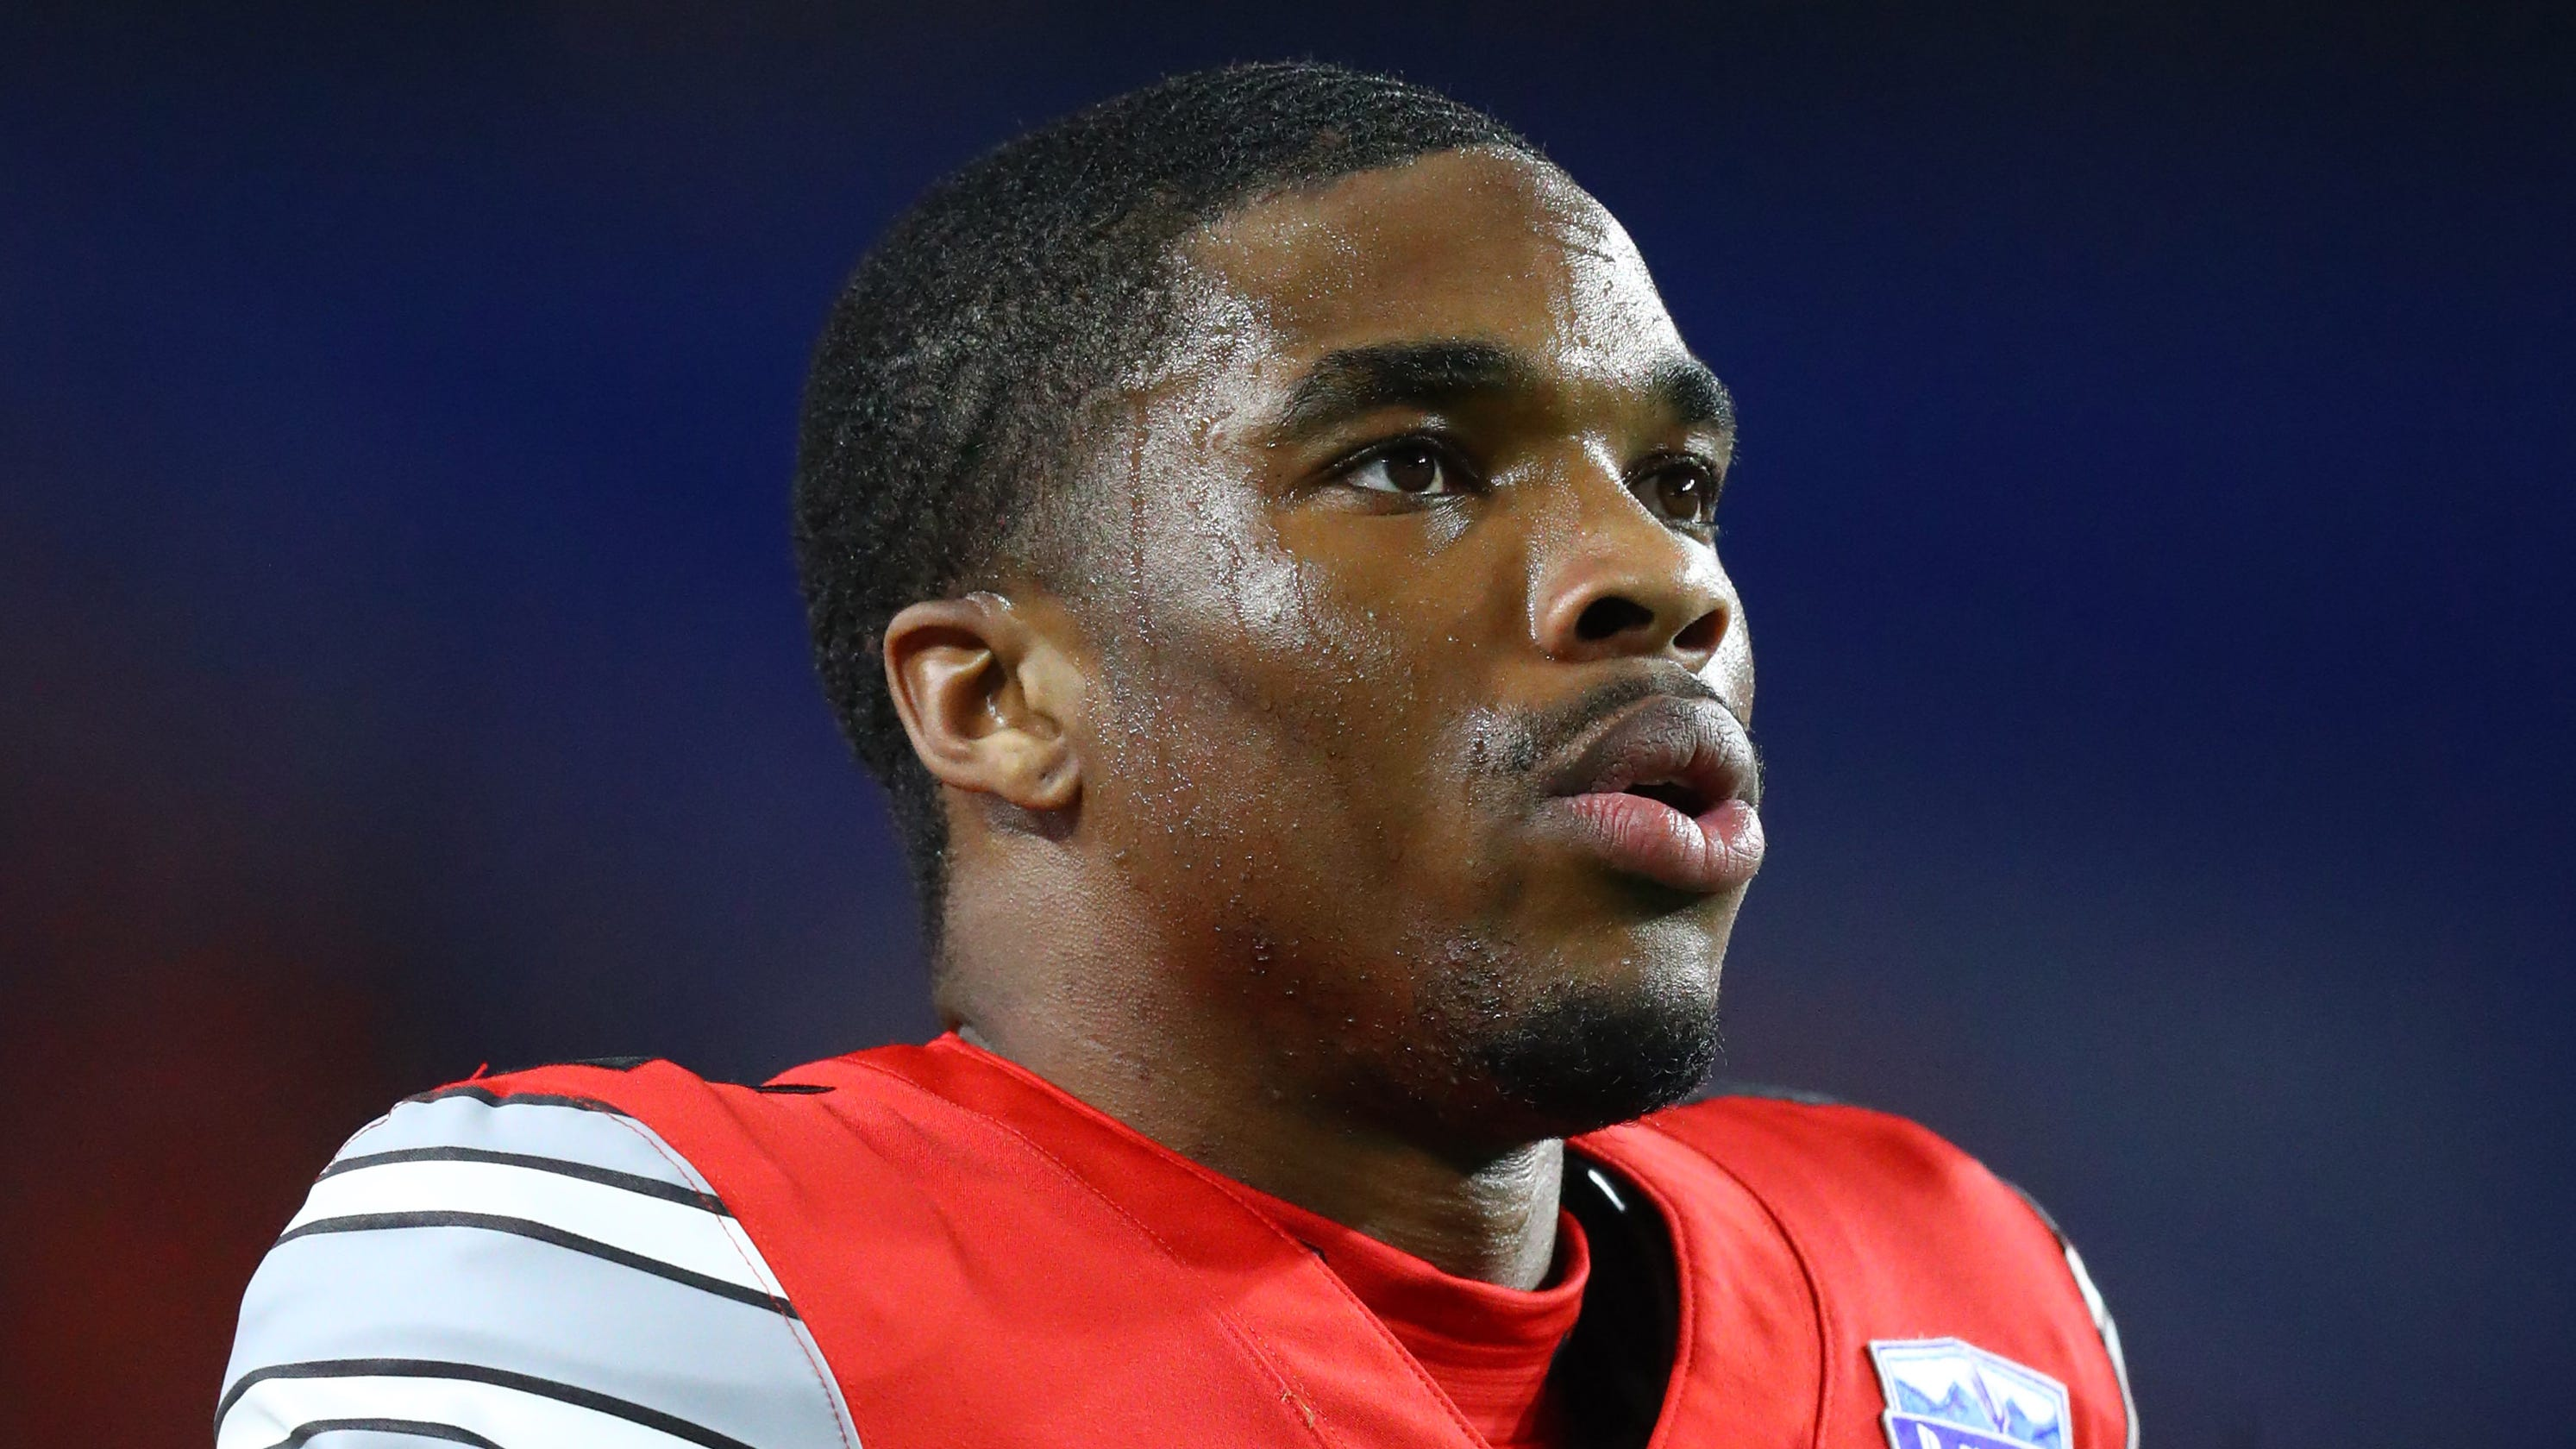 Detroit Lions sign Ohio State's Jeff Okudah; only 1 draft pick remains unsigned